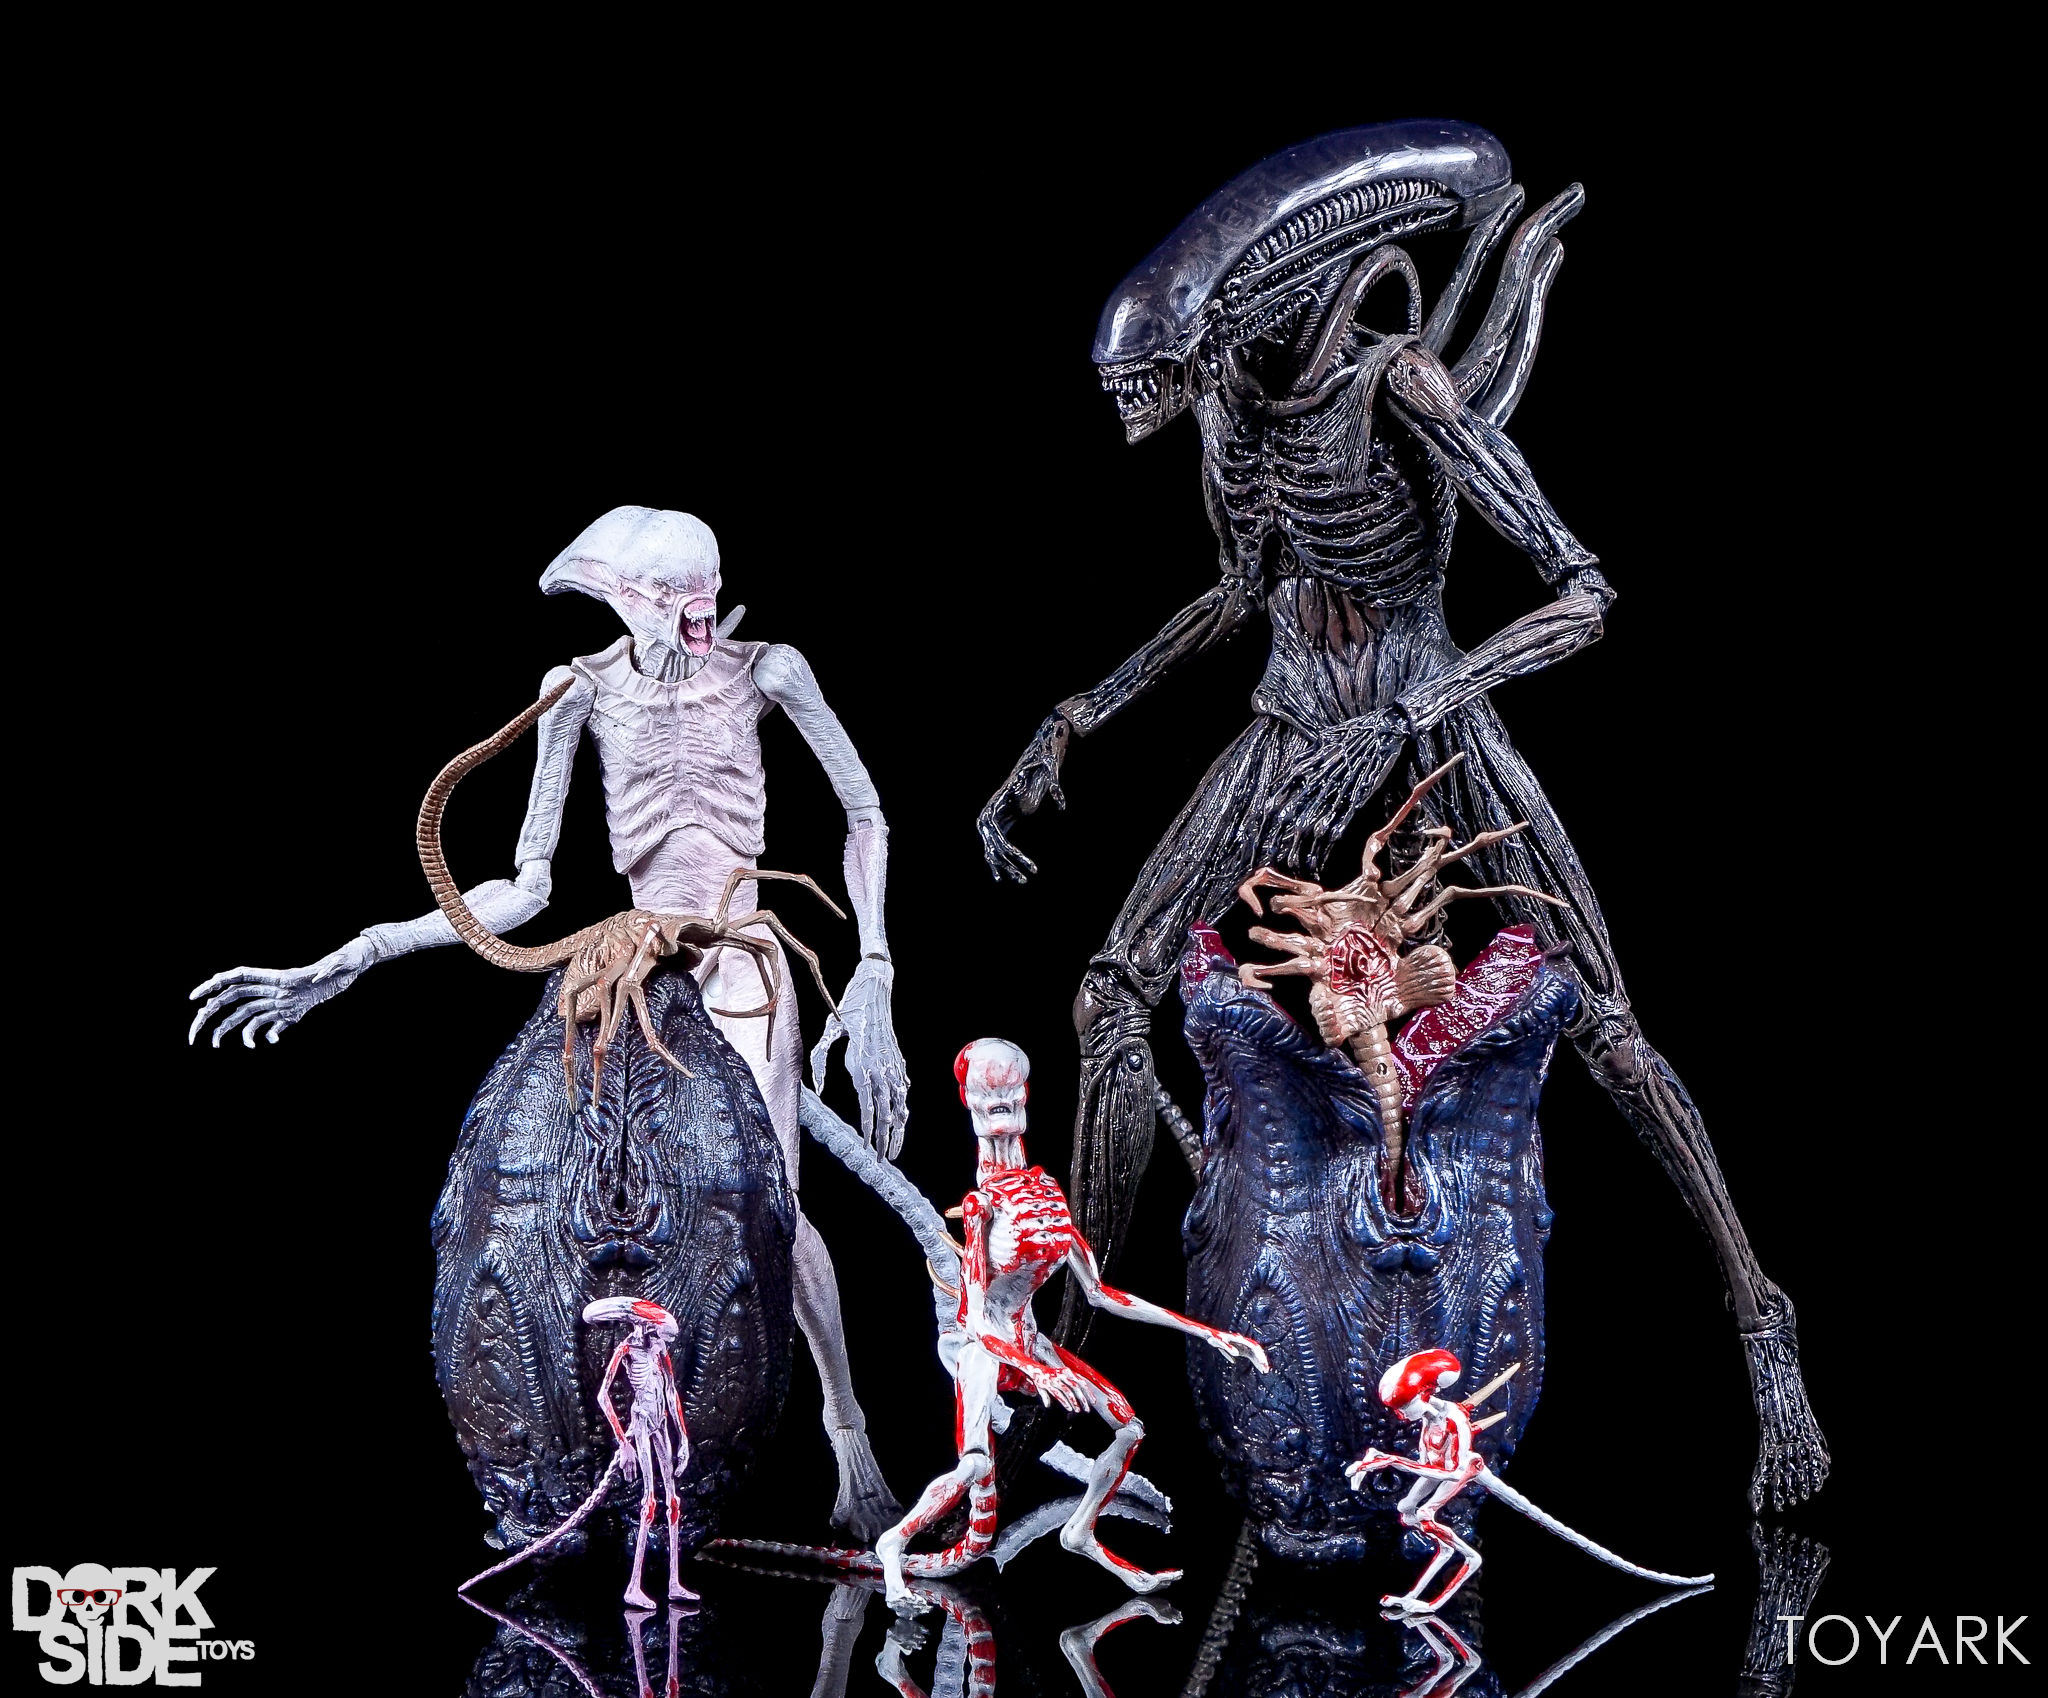 http://news.toyark.com/wp-content/uploads/sites/4/2017/08/NECA-Alien-Covenant-Figures-039.jpg